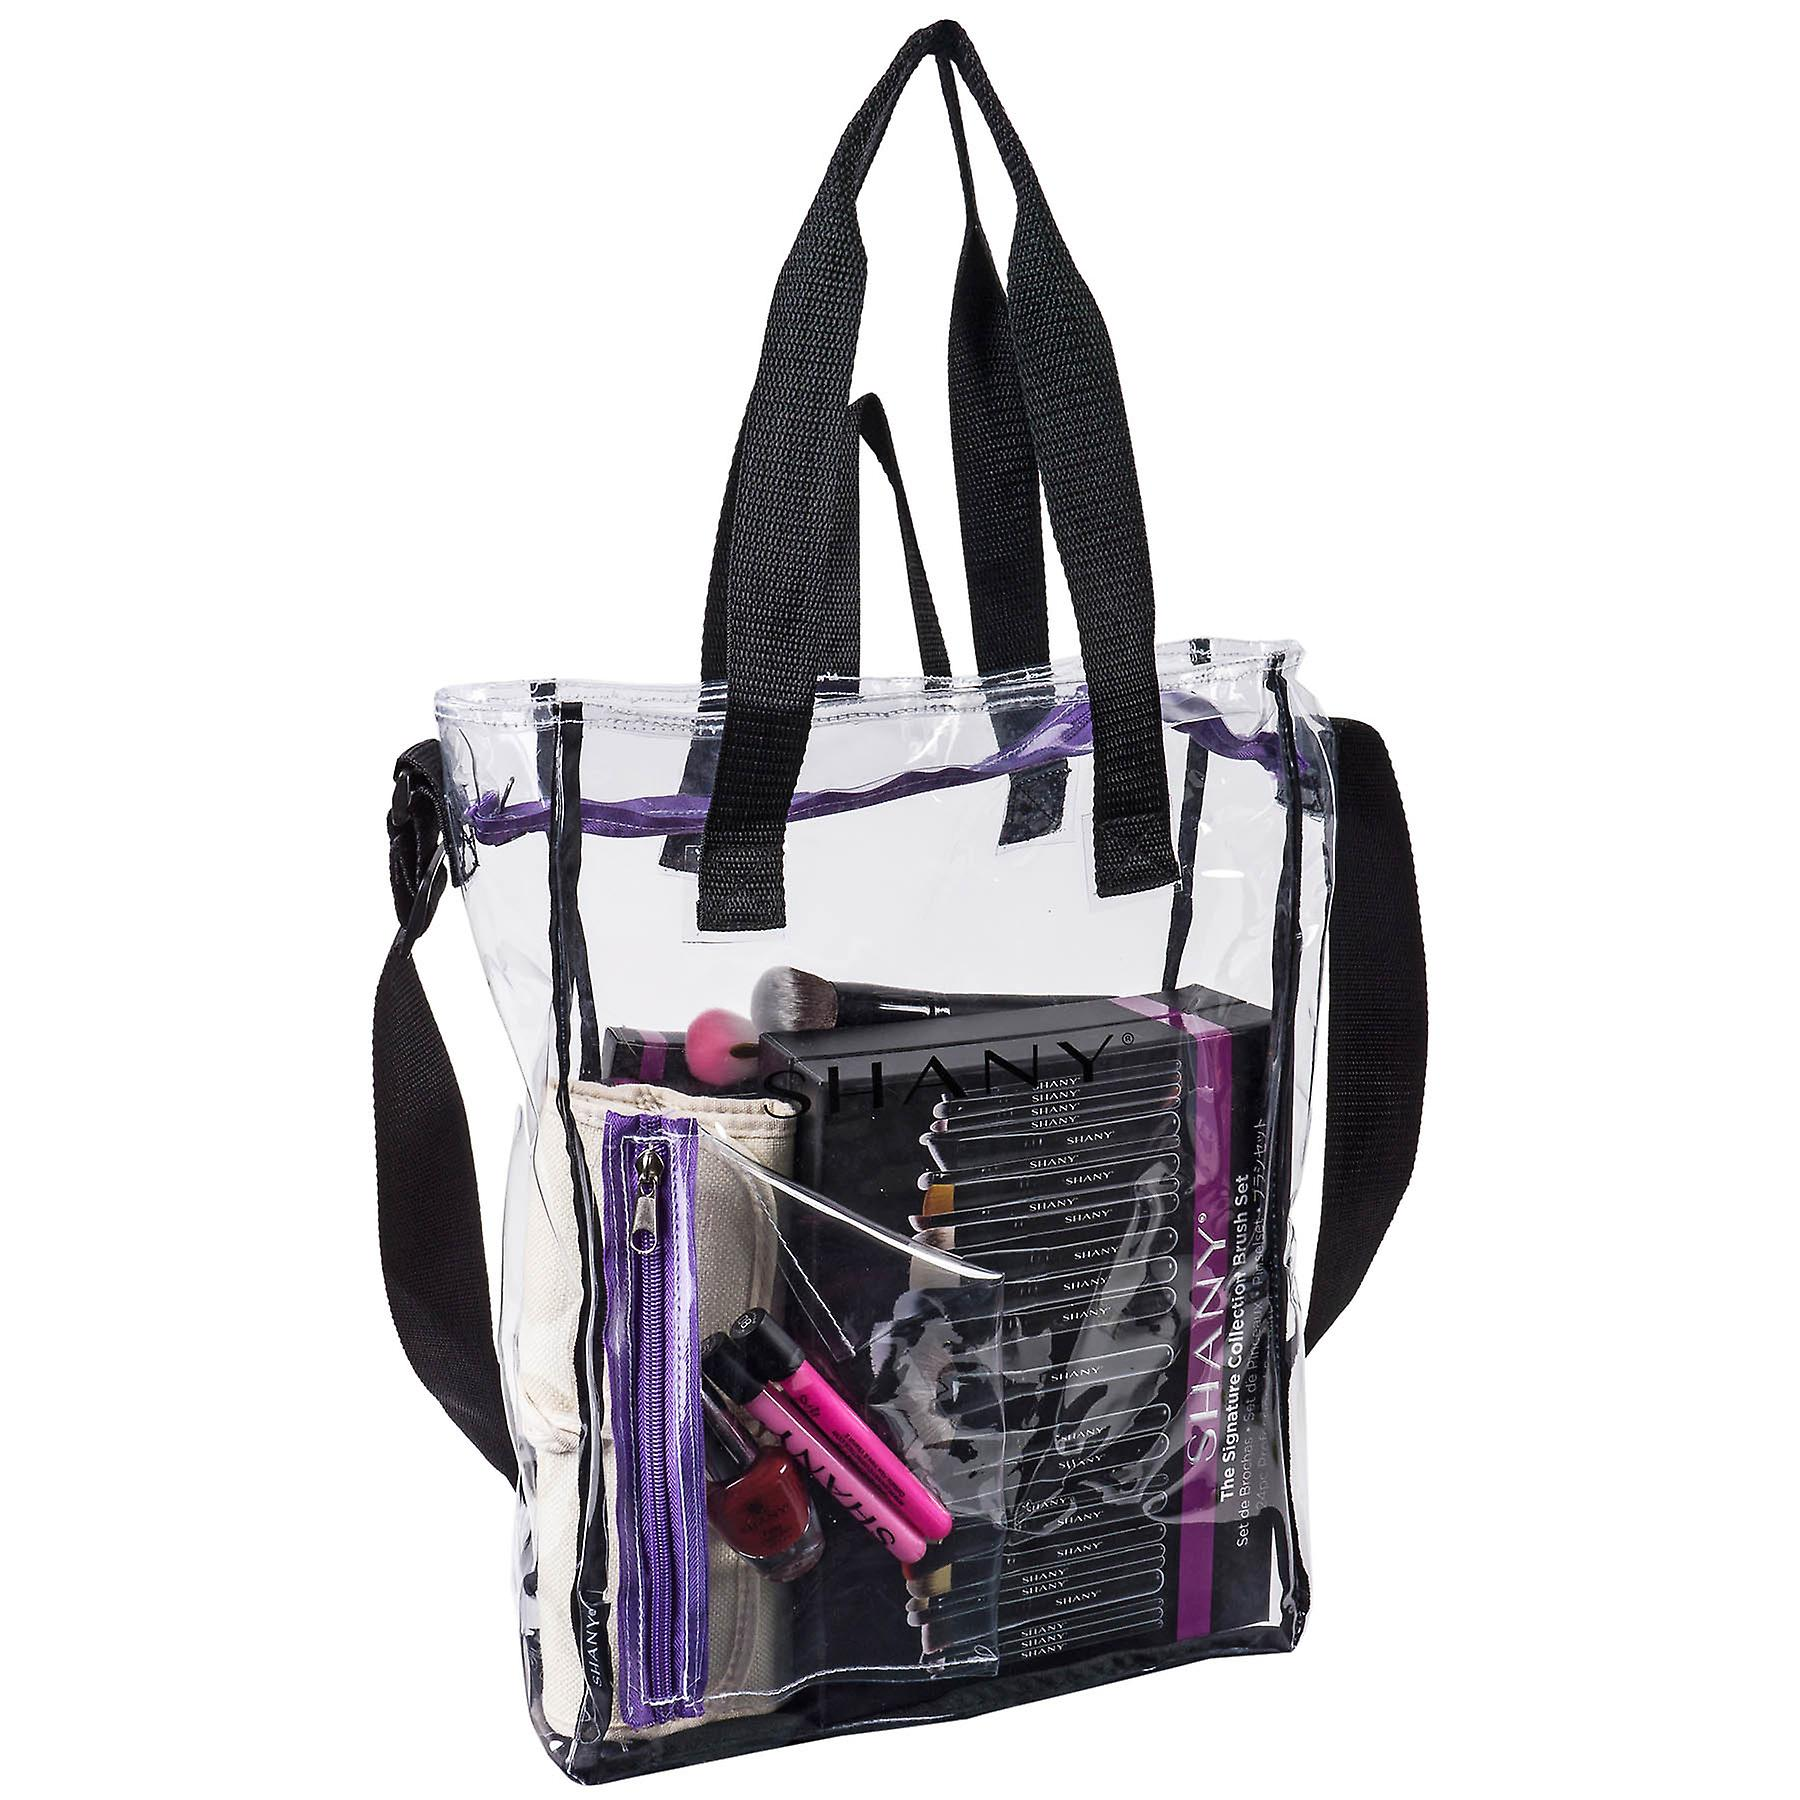 SHANY Clear Toiletry and Makeup Carry-On Travel Bag – Large Multiple Handle, Two-Tone Tote with Purple Front Zippered Pocket